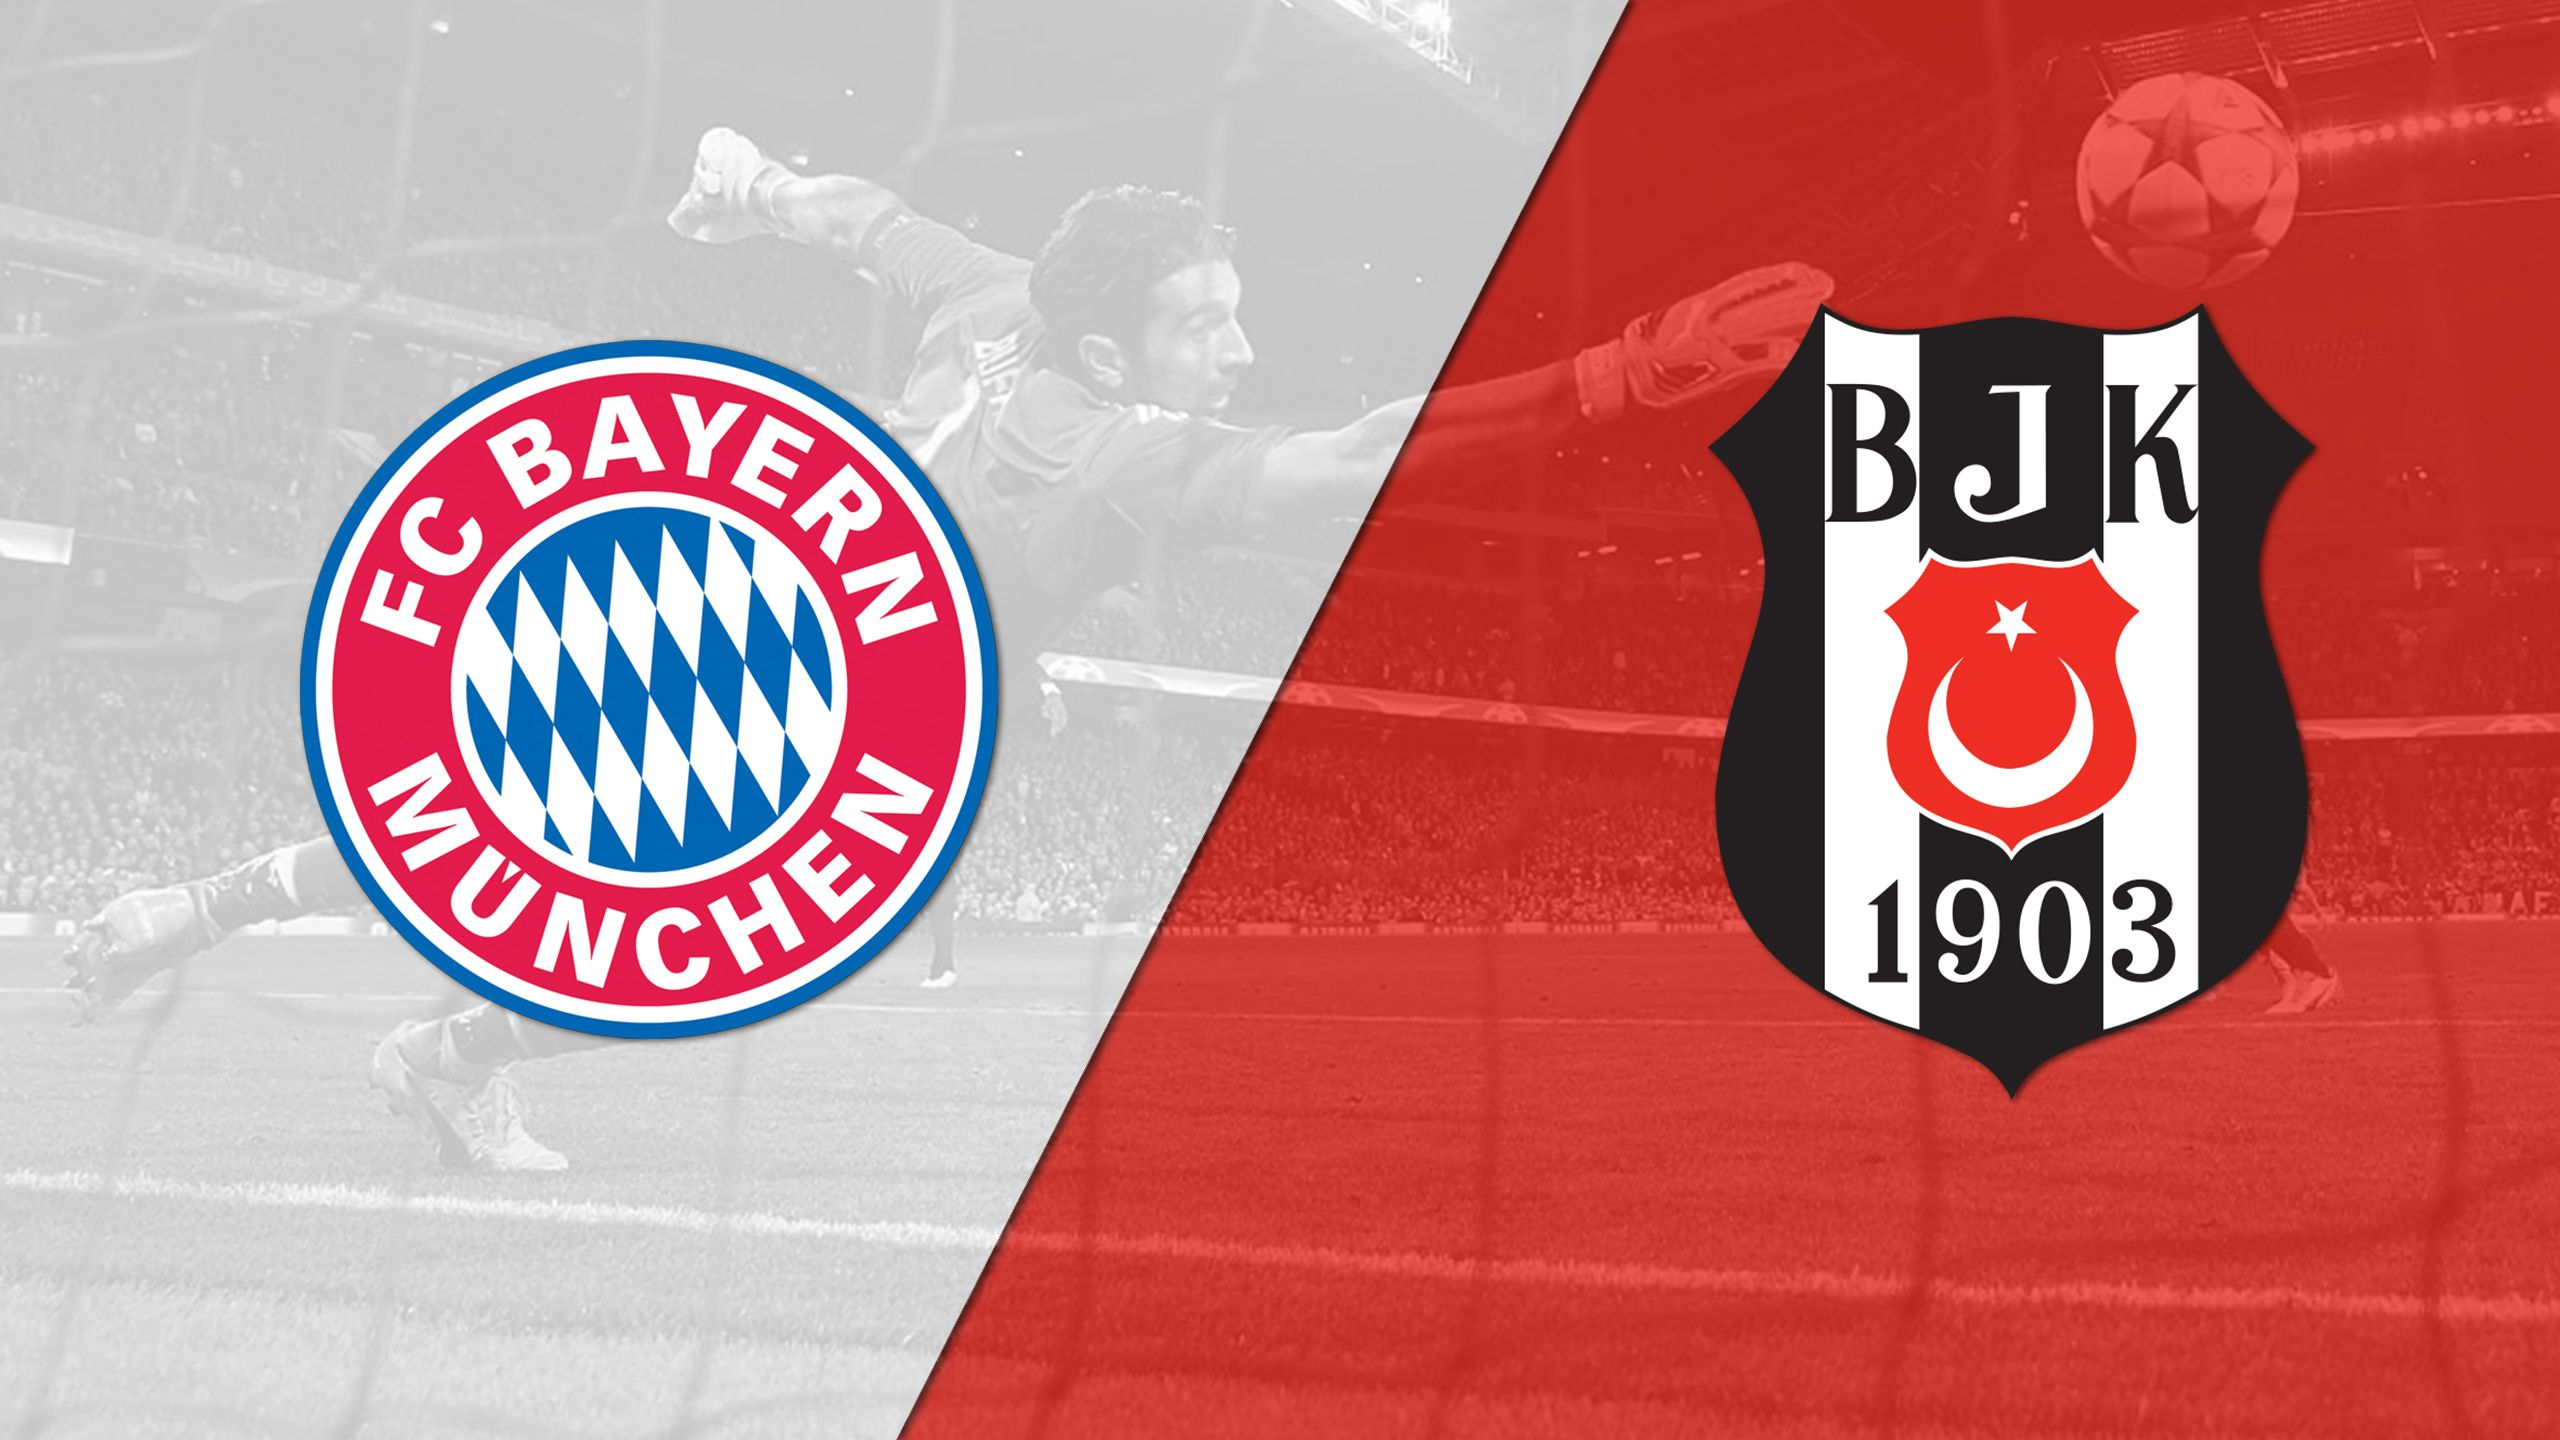 In Spanish - Bayern Munich vs. Besiktas (UEFA Champions League) (re-air)